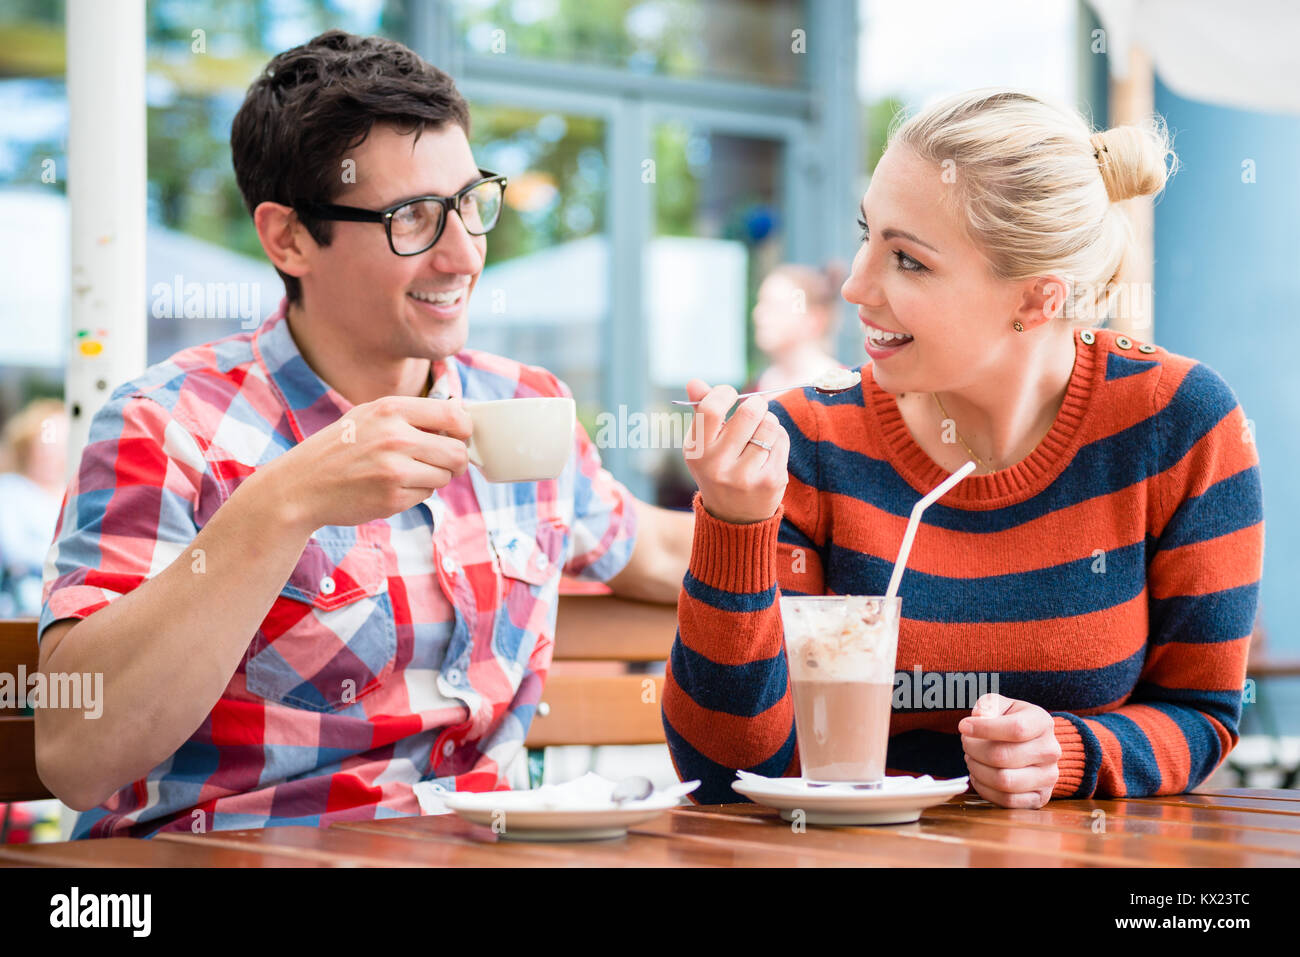 germany couple cafe stock photos germany couple cafe stock images alamy. Black Bedroom Furniture Sets. Home Design Ideas